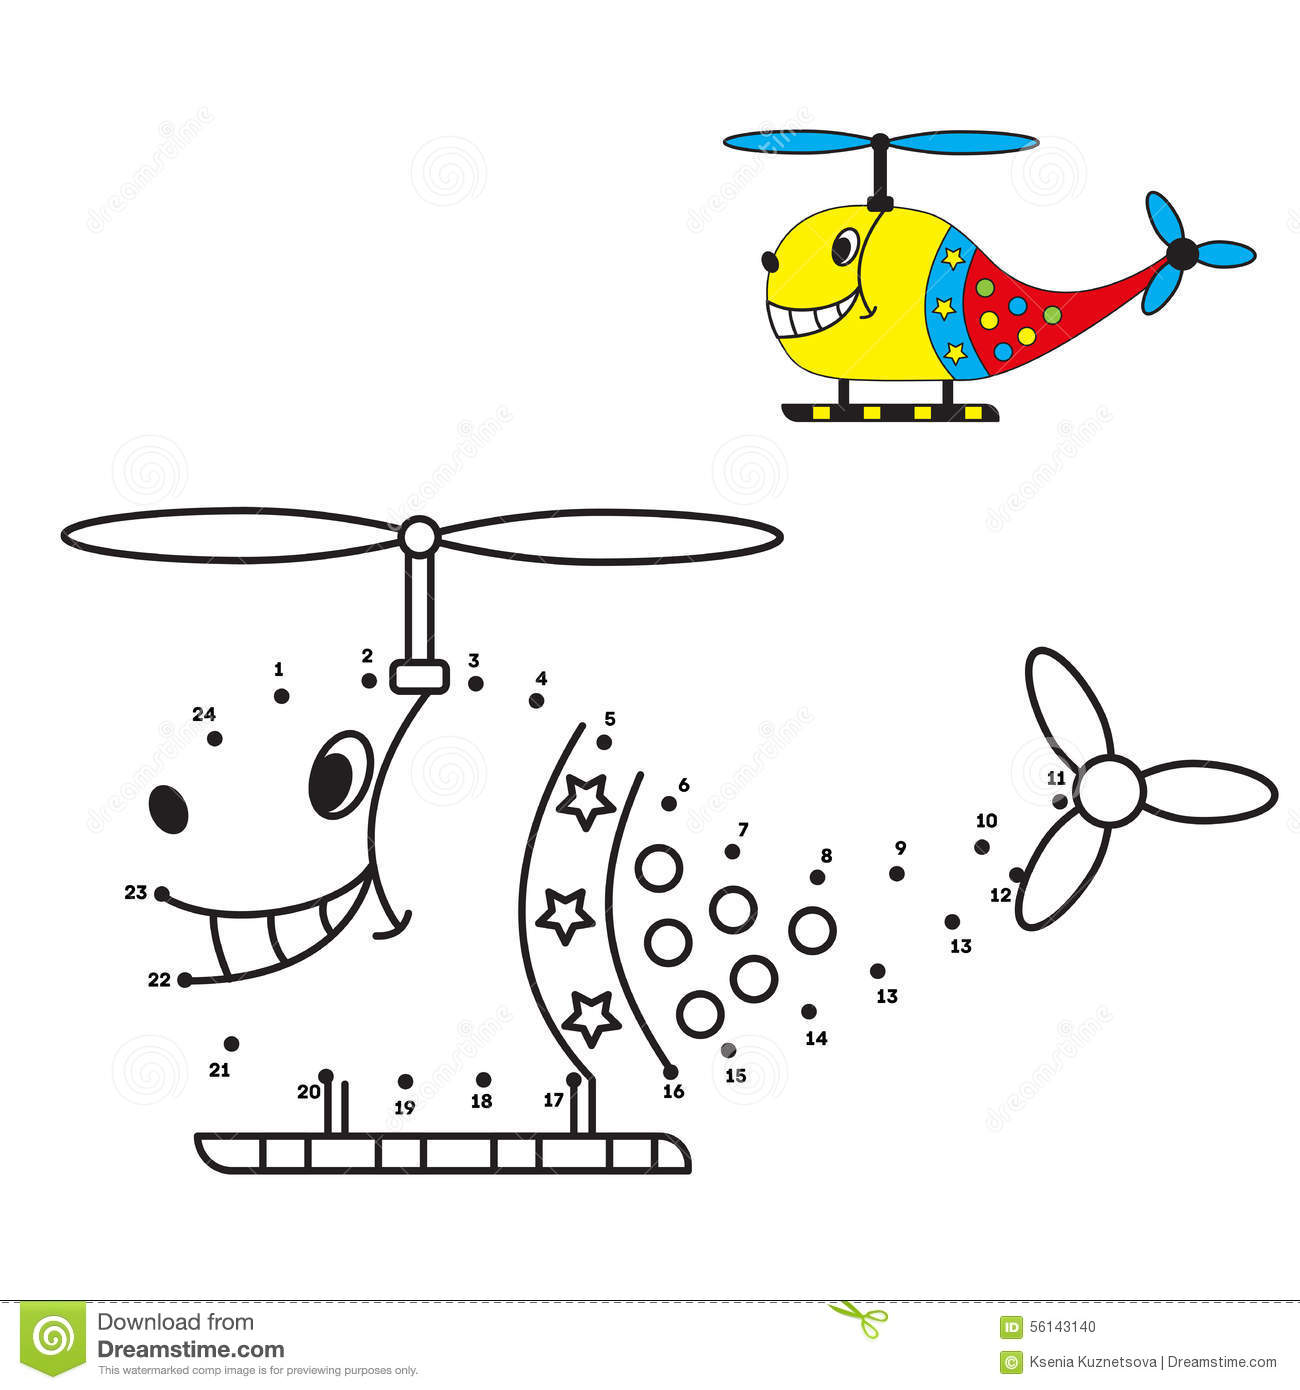 Dot To Dot Game Helicopter Coloring Book For Stock Vector